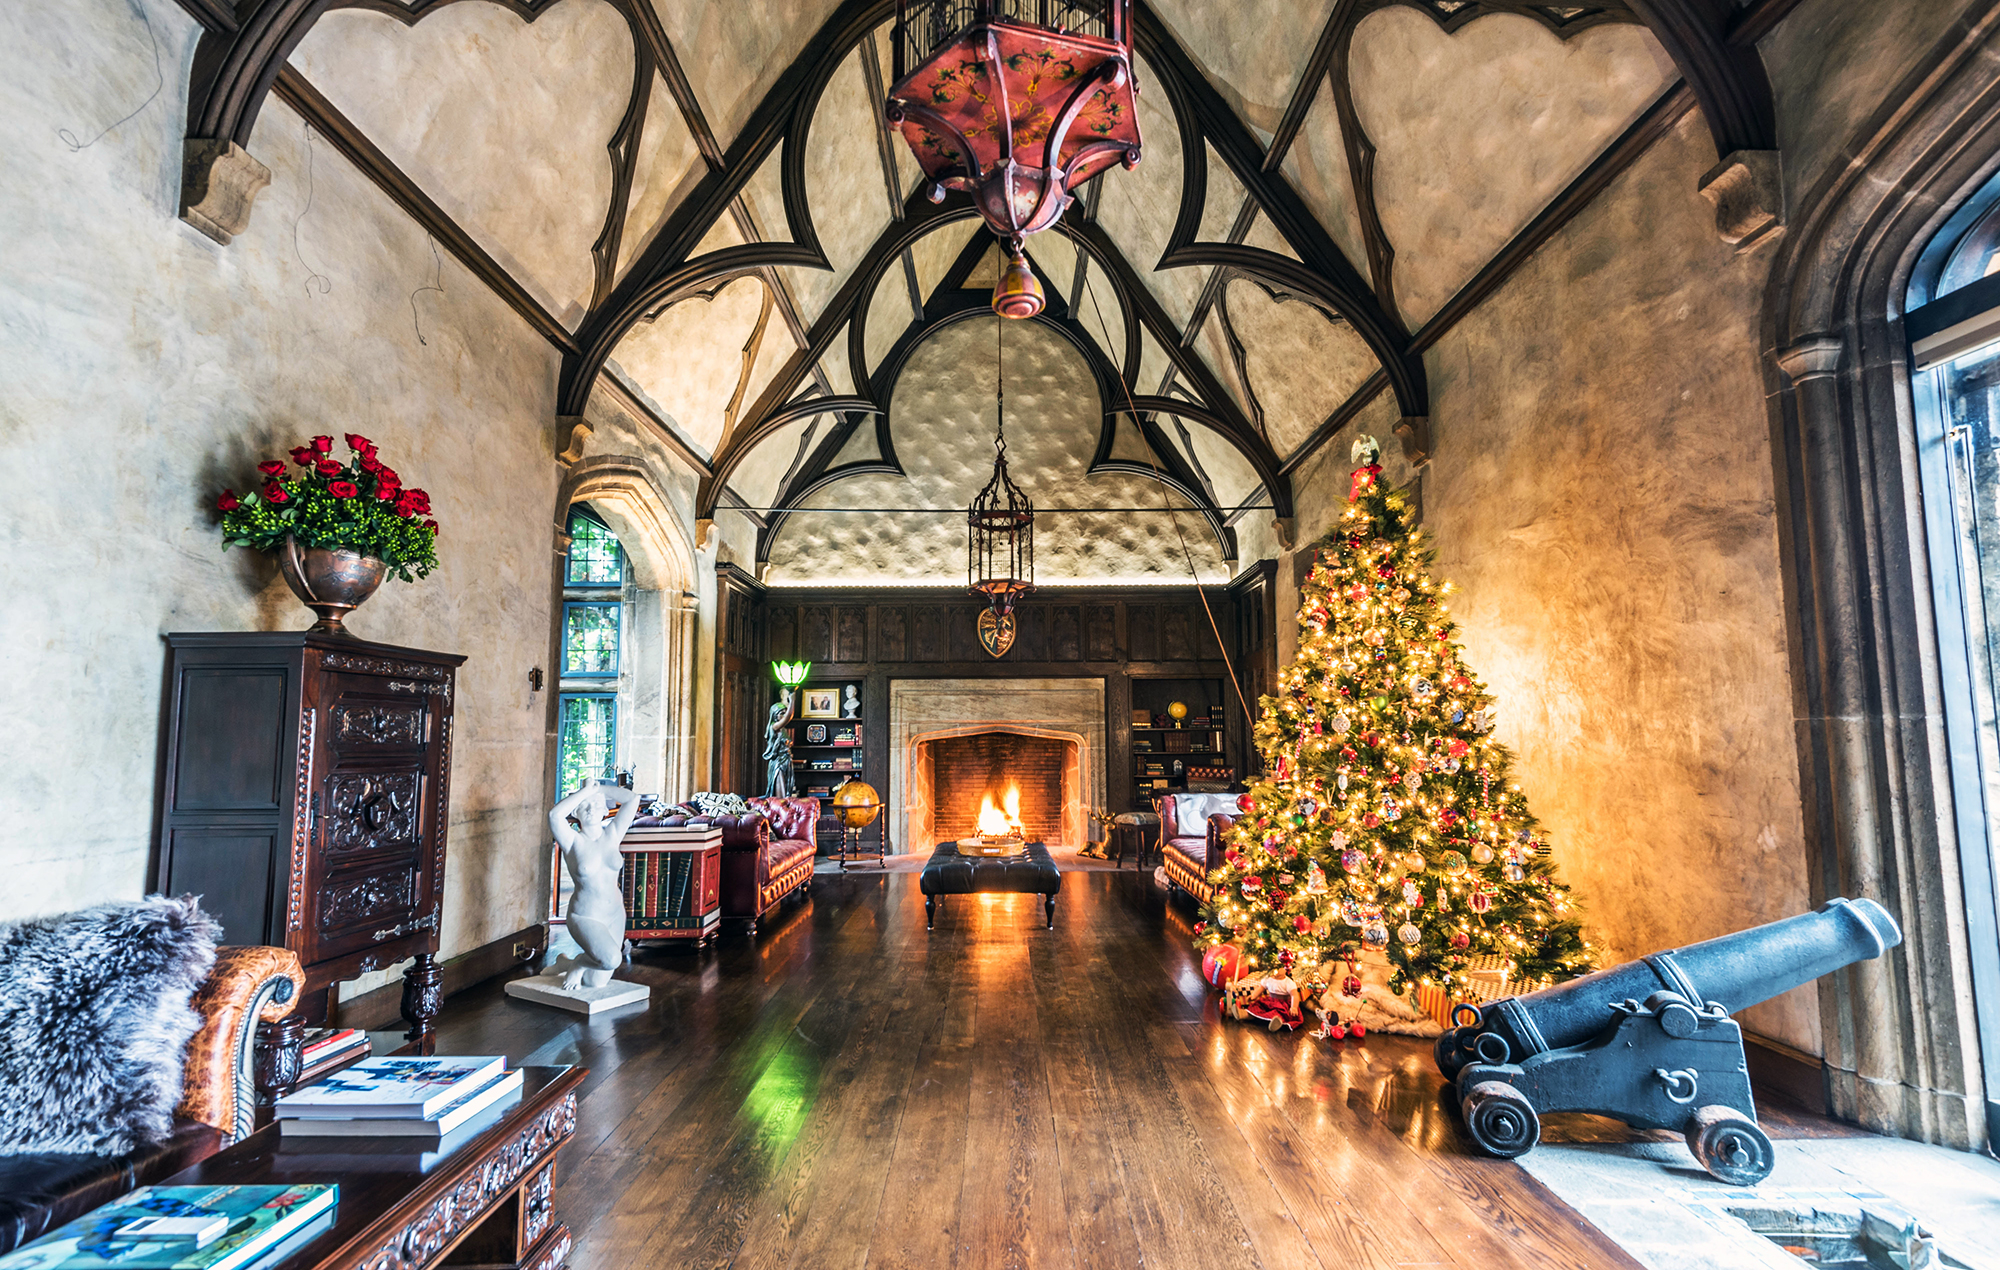 Inside a castle in Allentown | Mayfair Lane castle | Buffalo Magazine